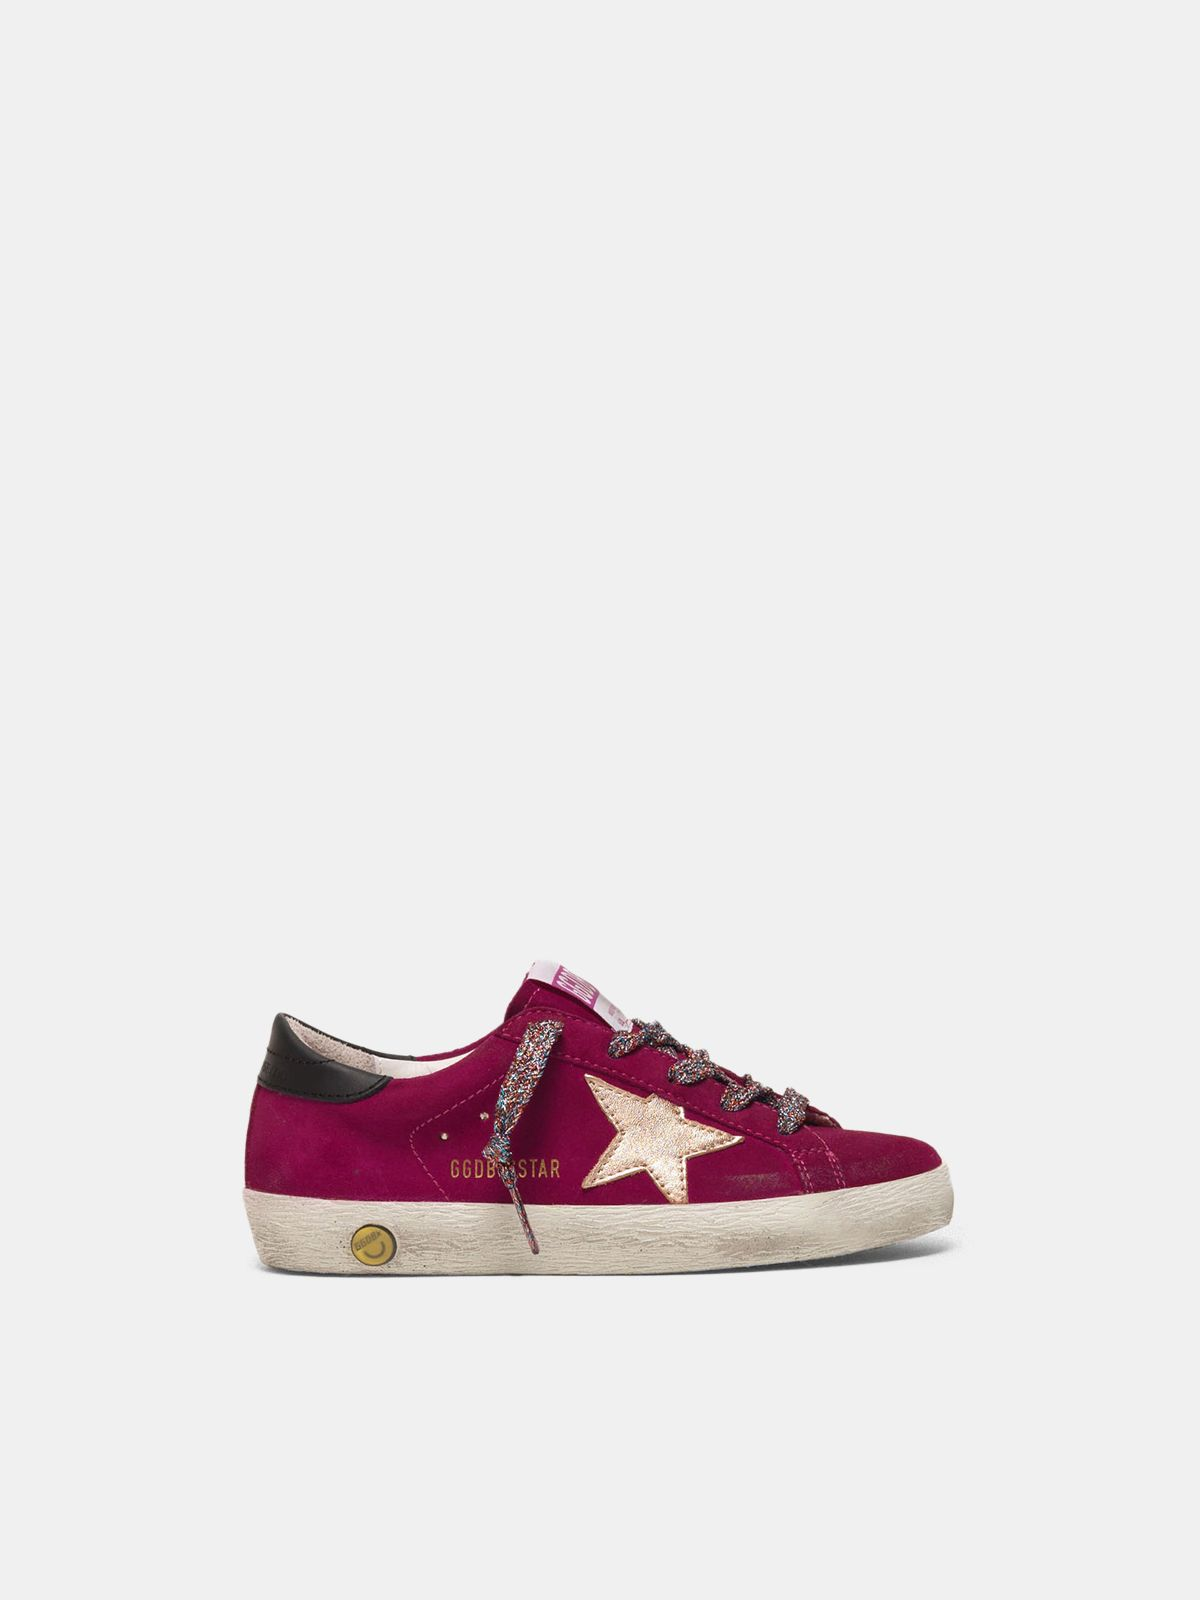 Golden Goose - Sneakers Super-Star in pelle scamosciata e stella laminata in